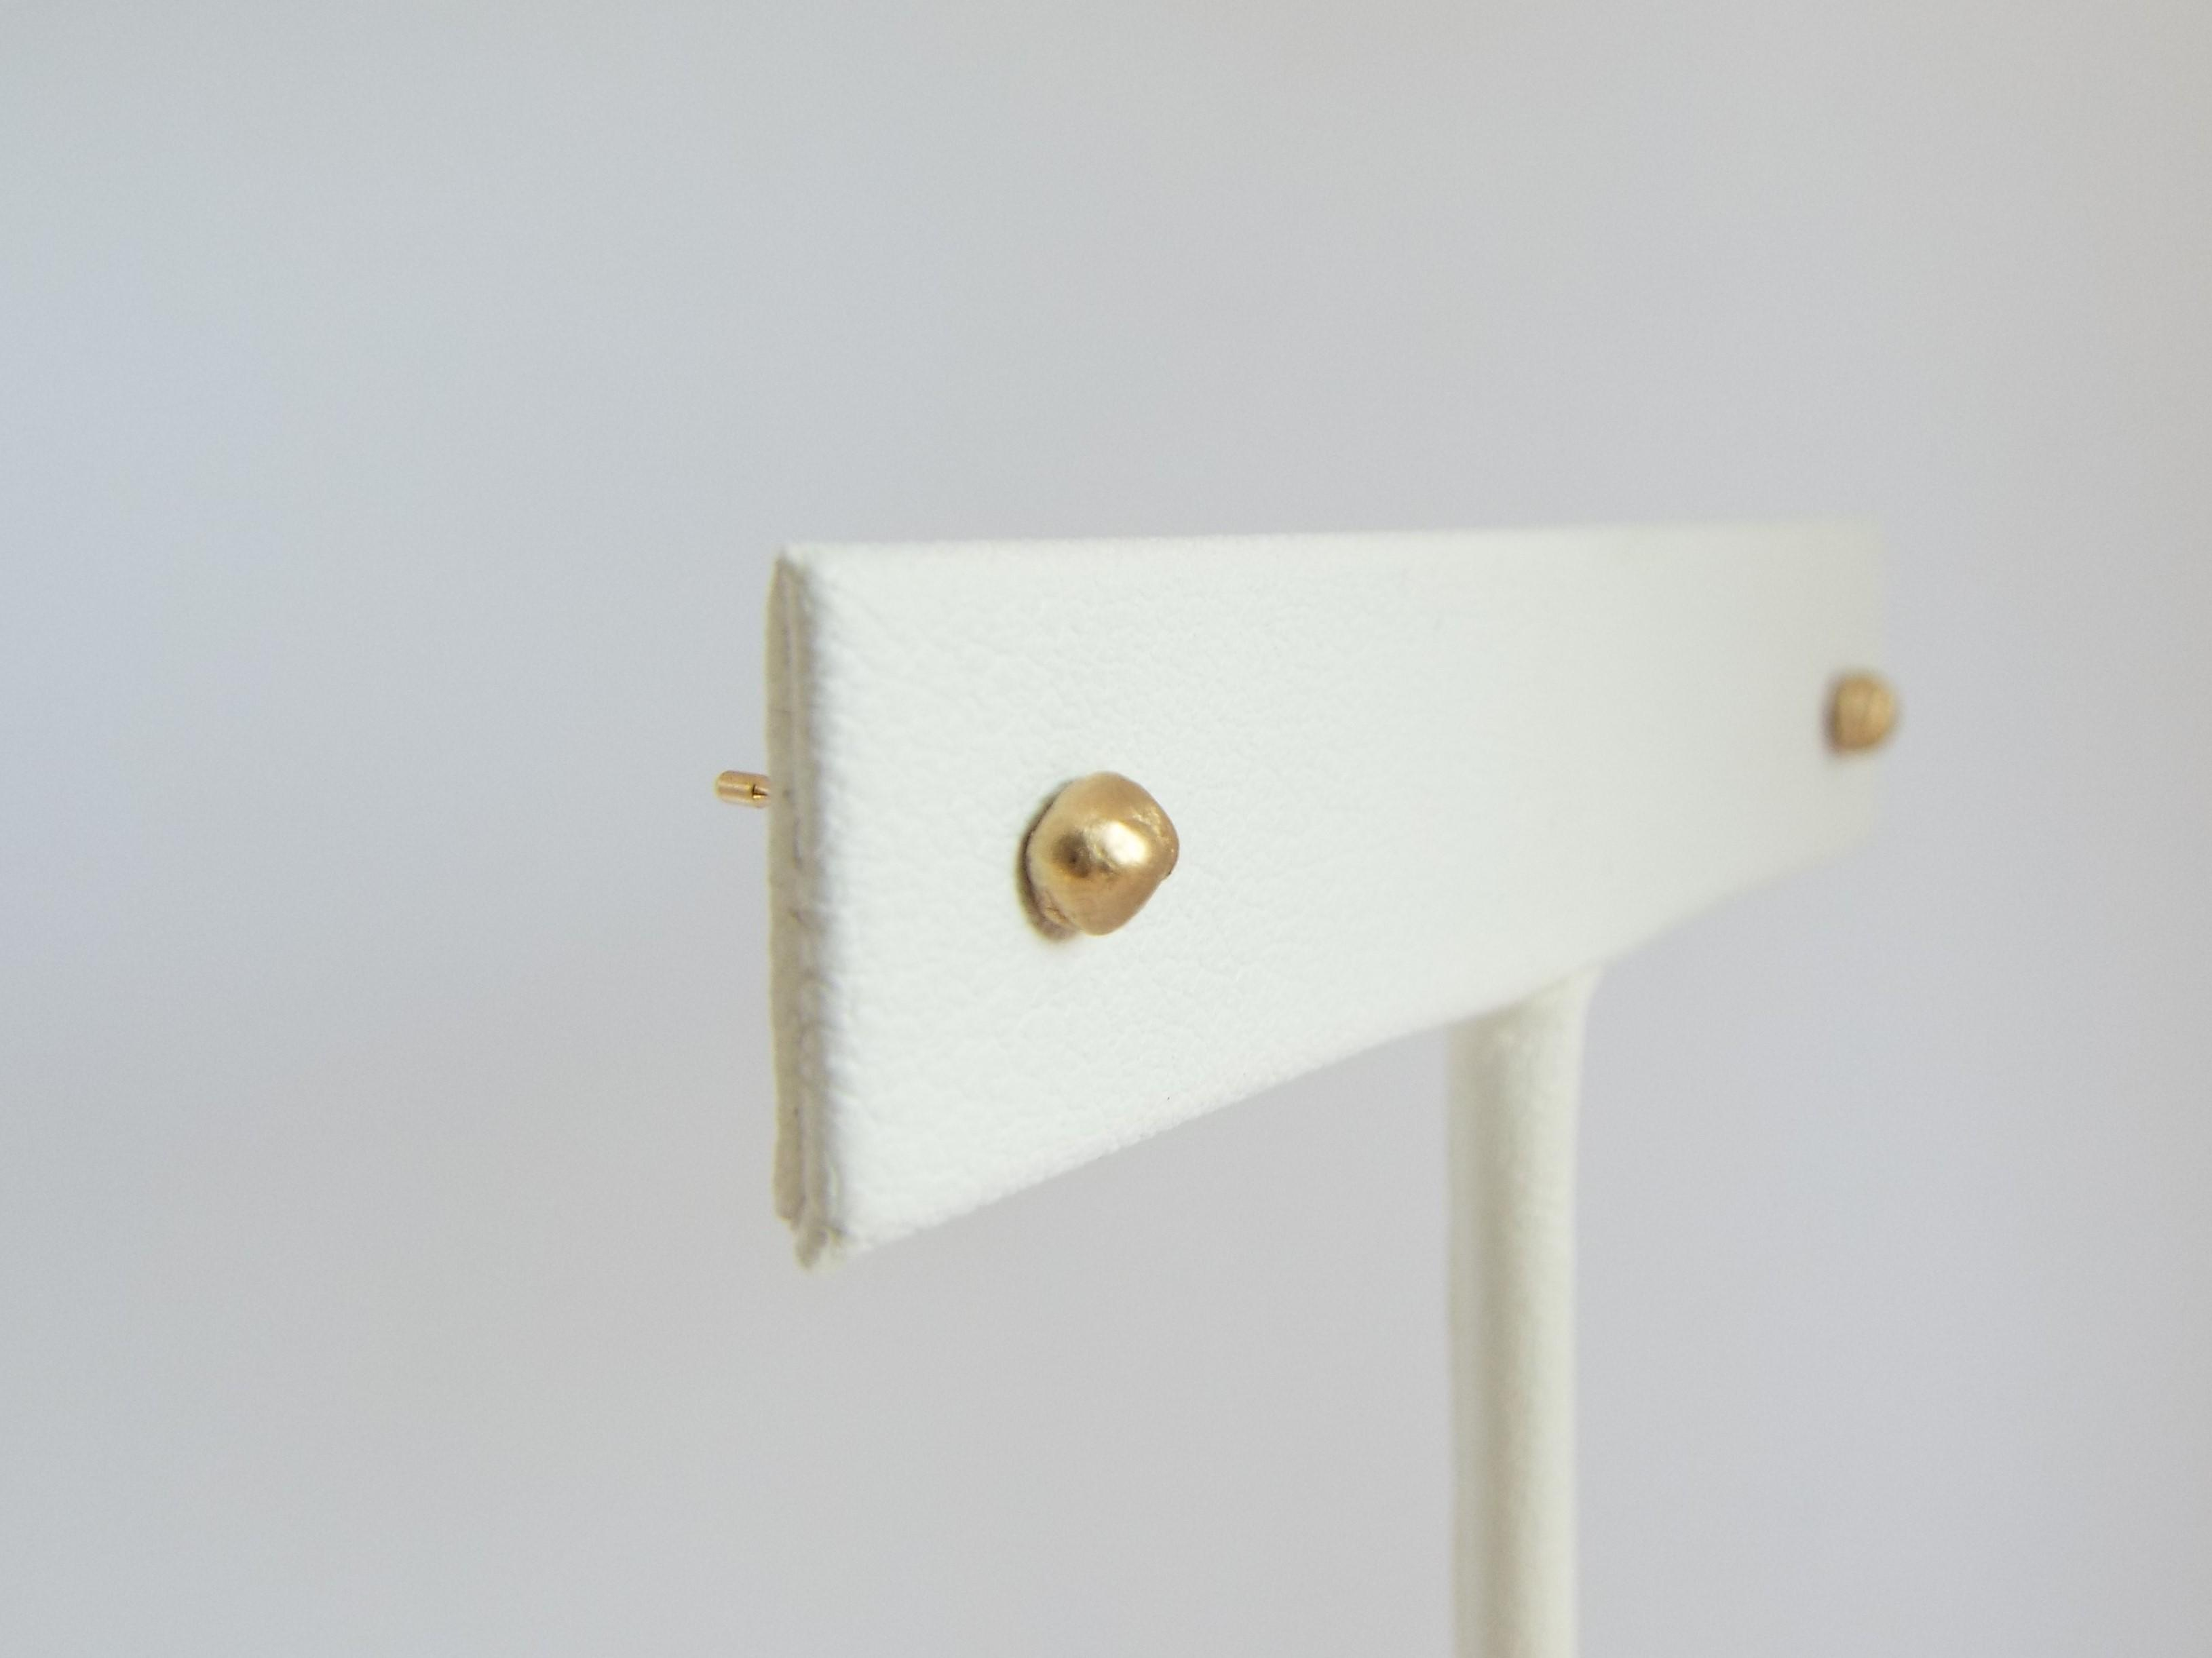 gold stud earrings made of recyled gold